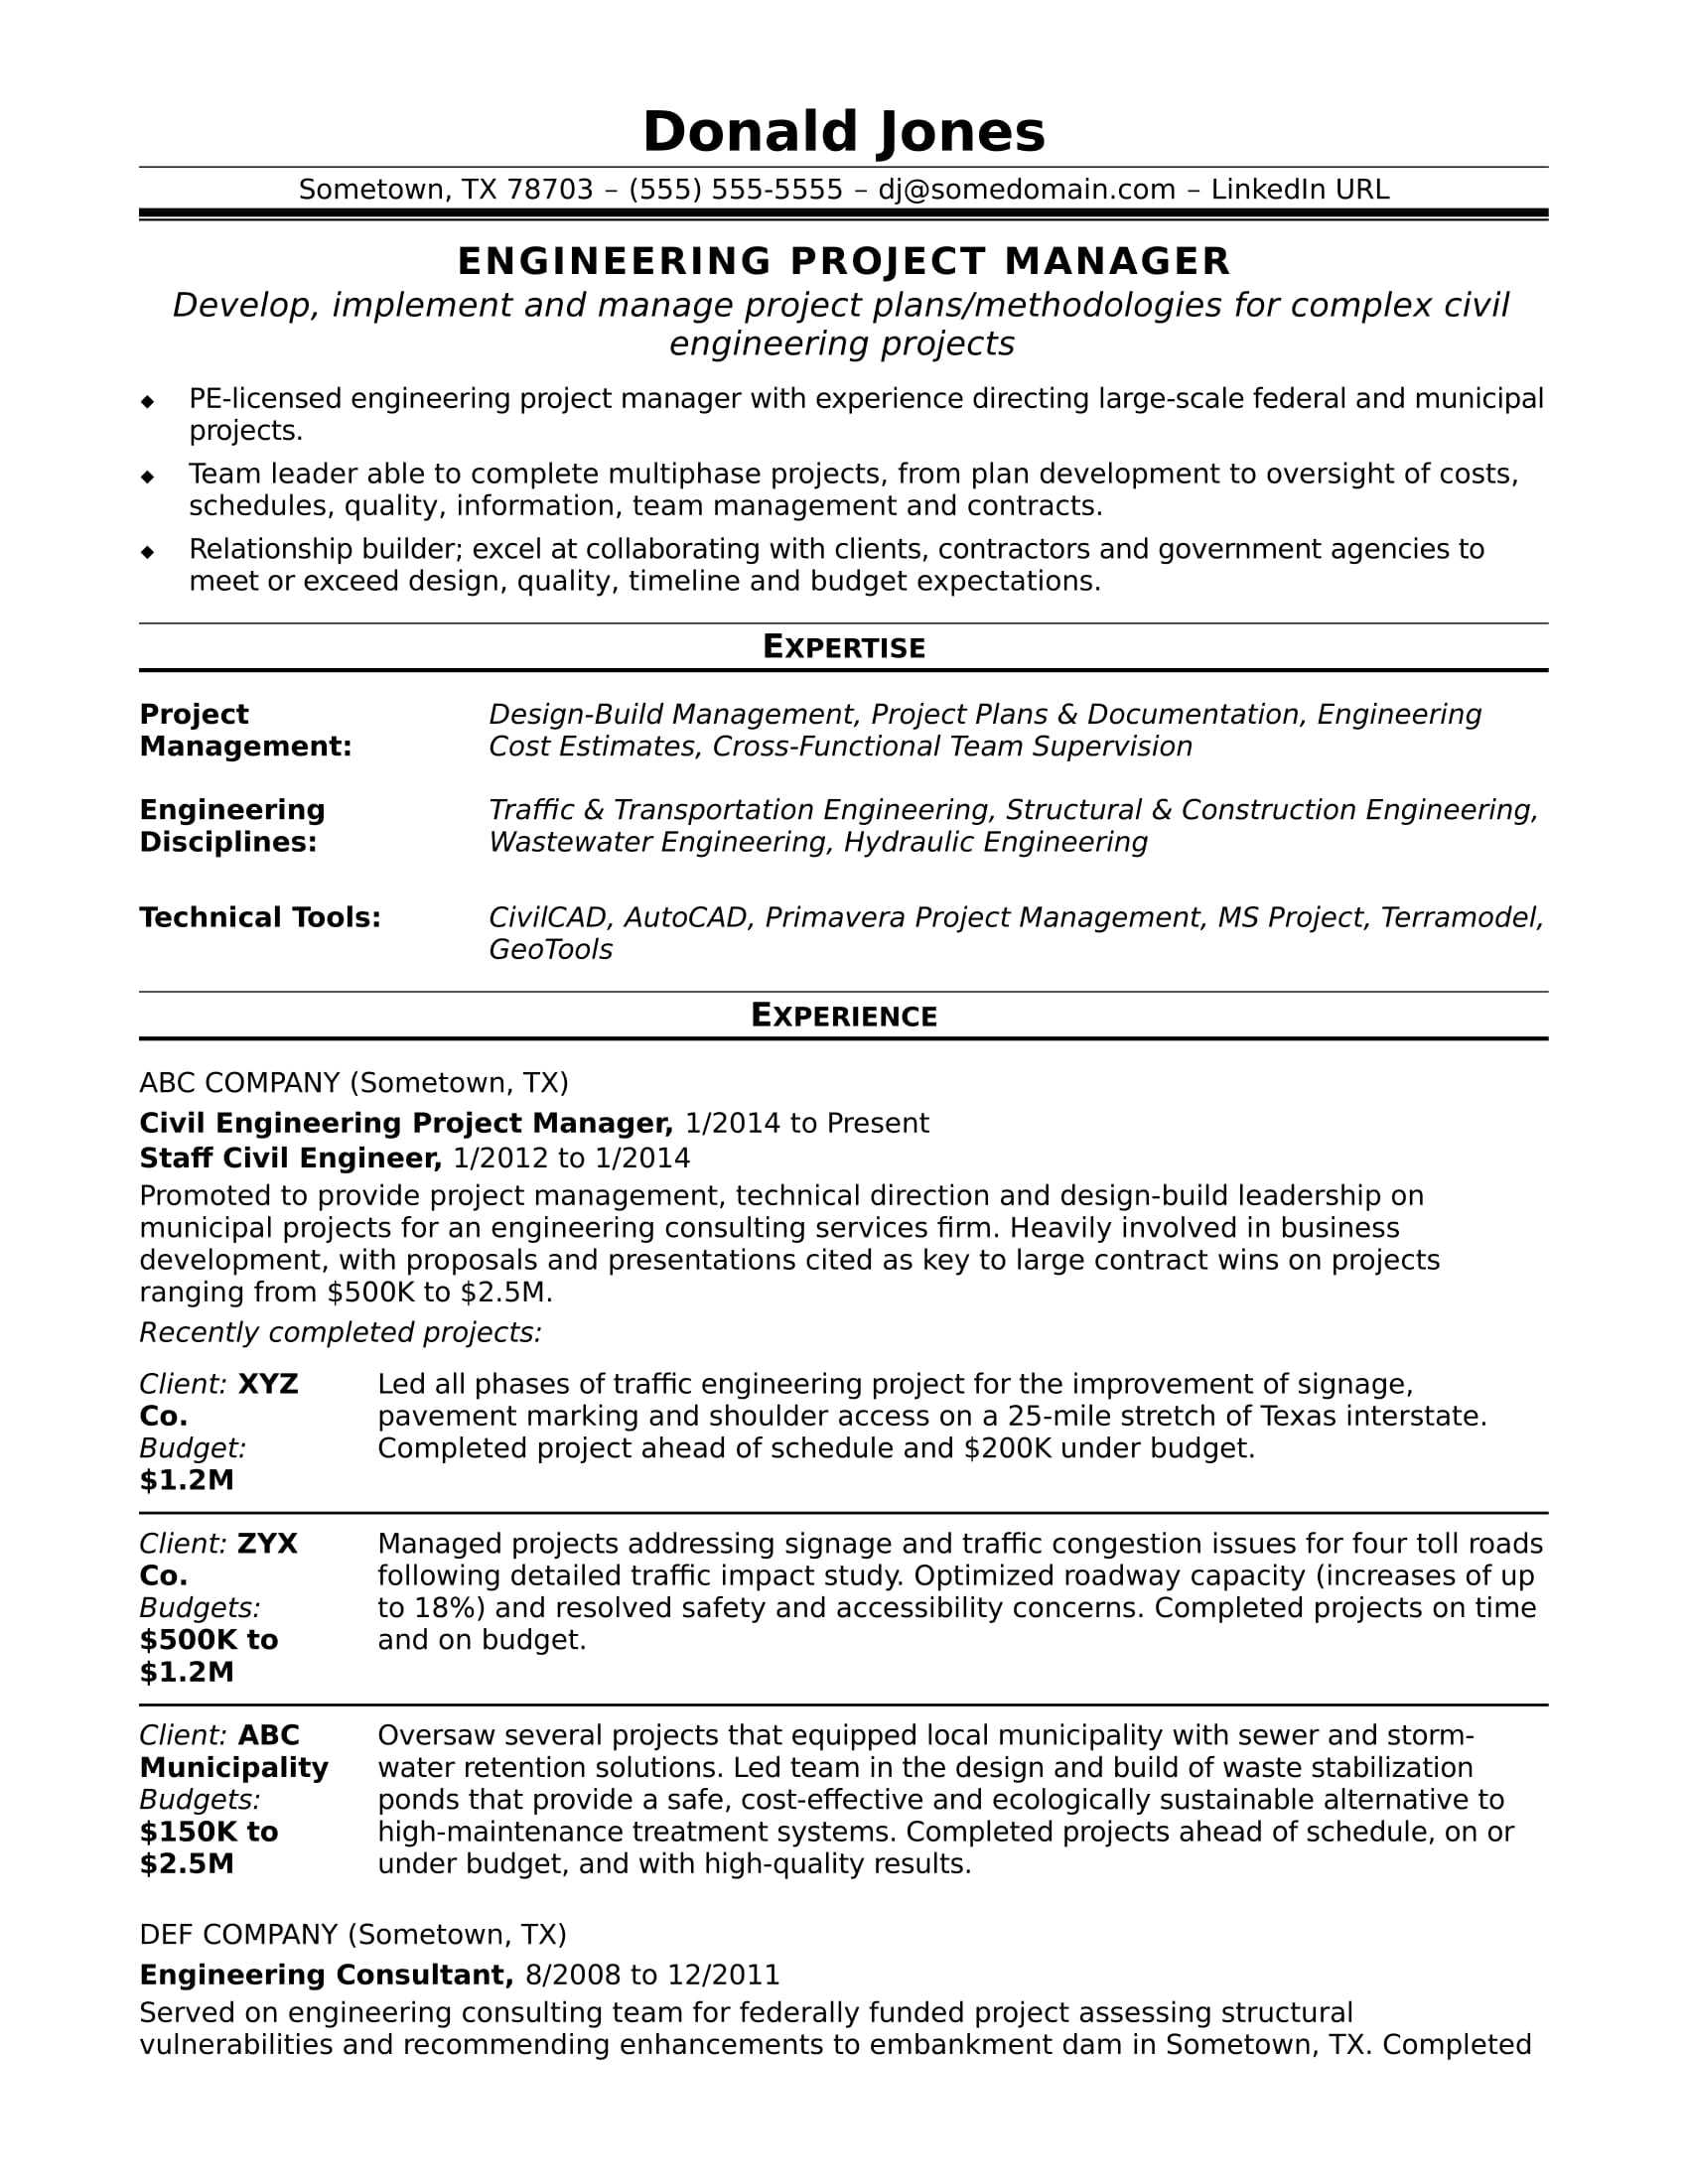 Sample Resume For A Midlevel Engineering Project Manager  Construction Project Engineer Resume